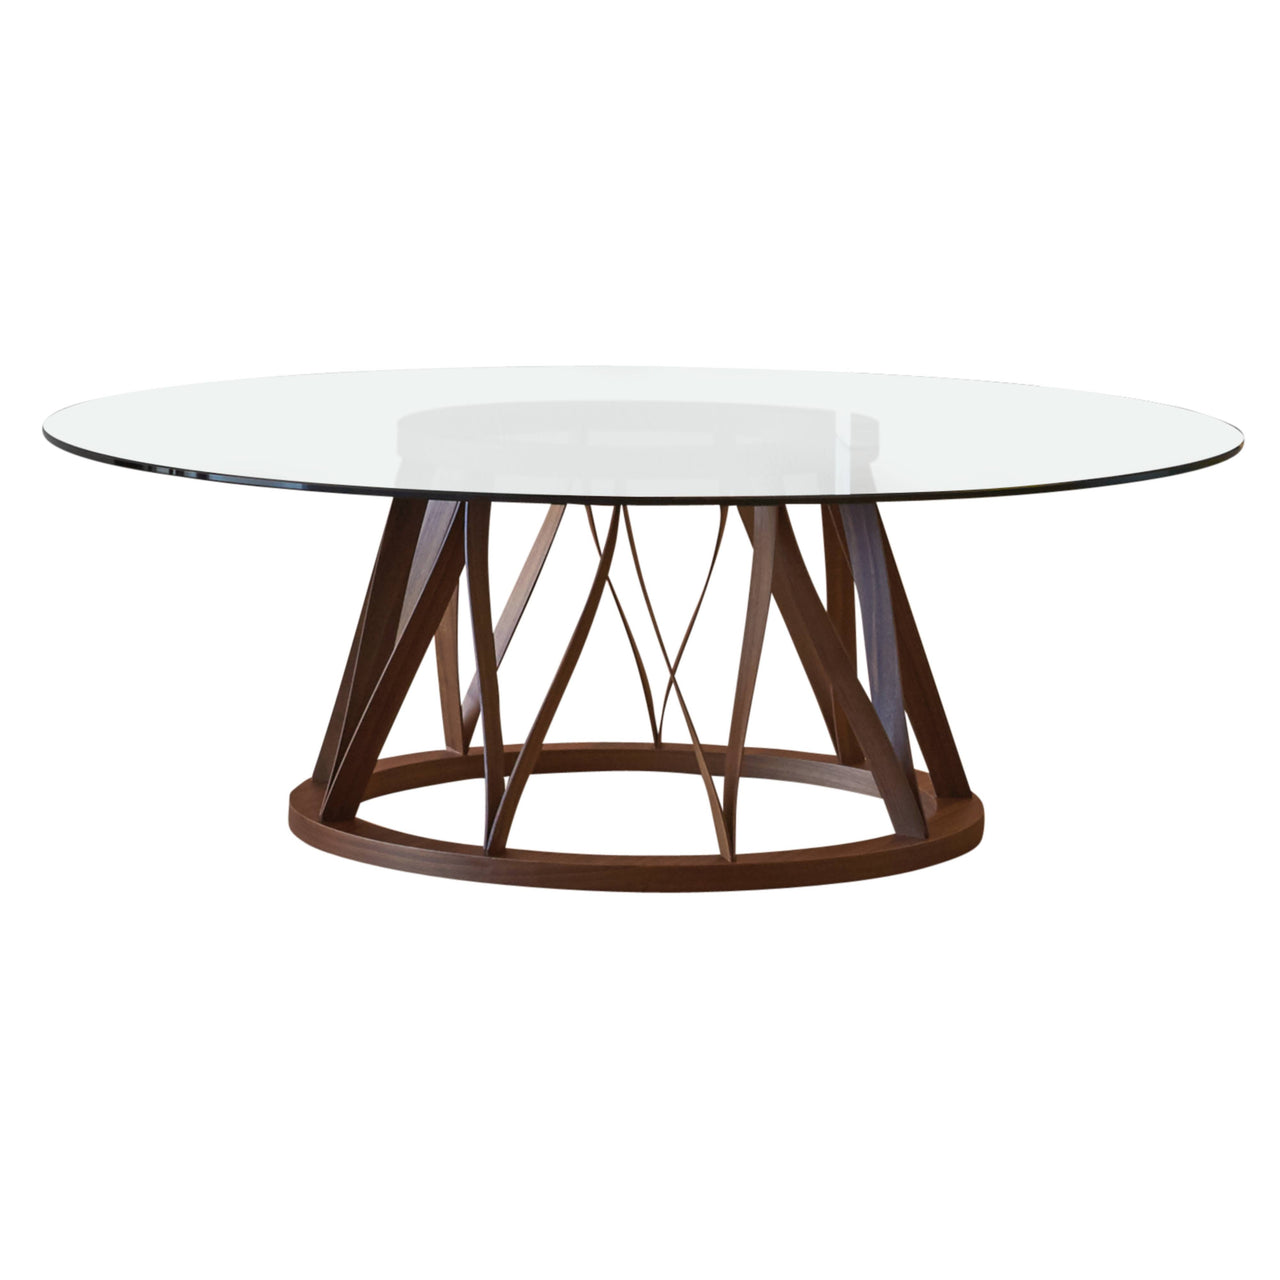 Acco Coffee Table: Large - 39.5